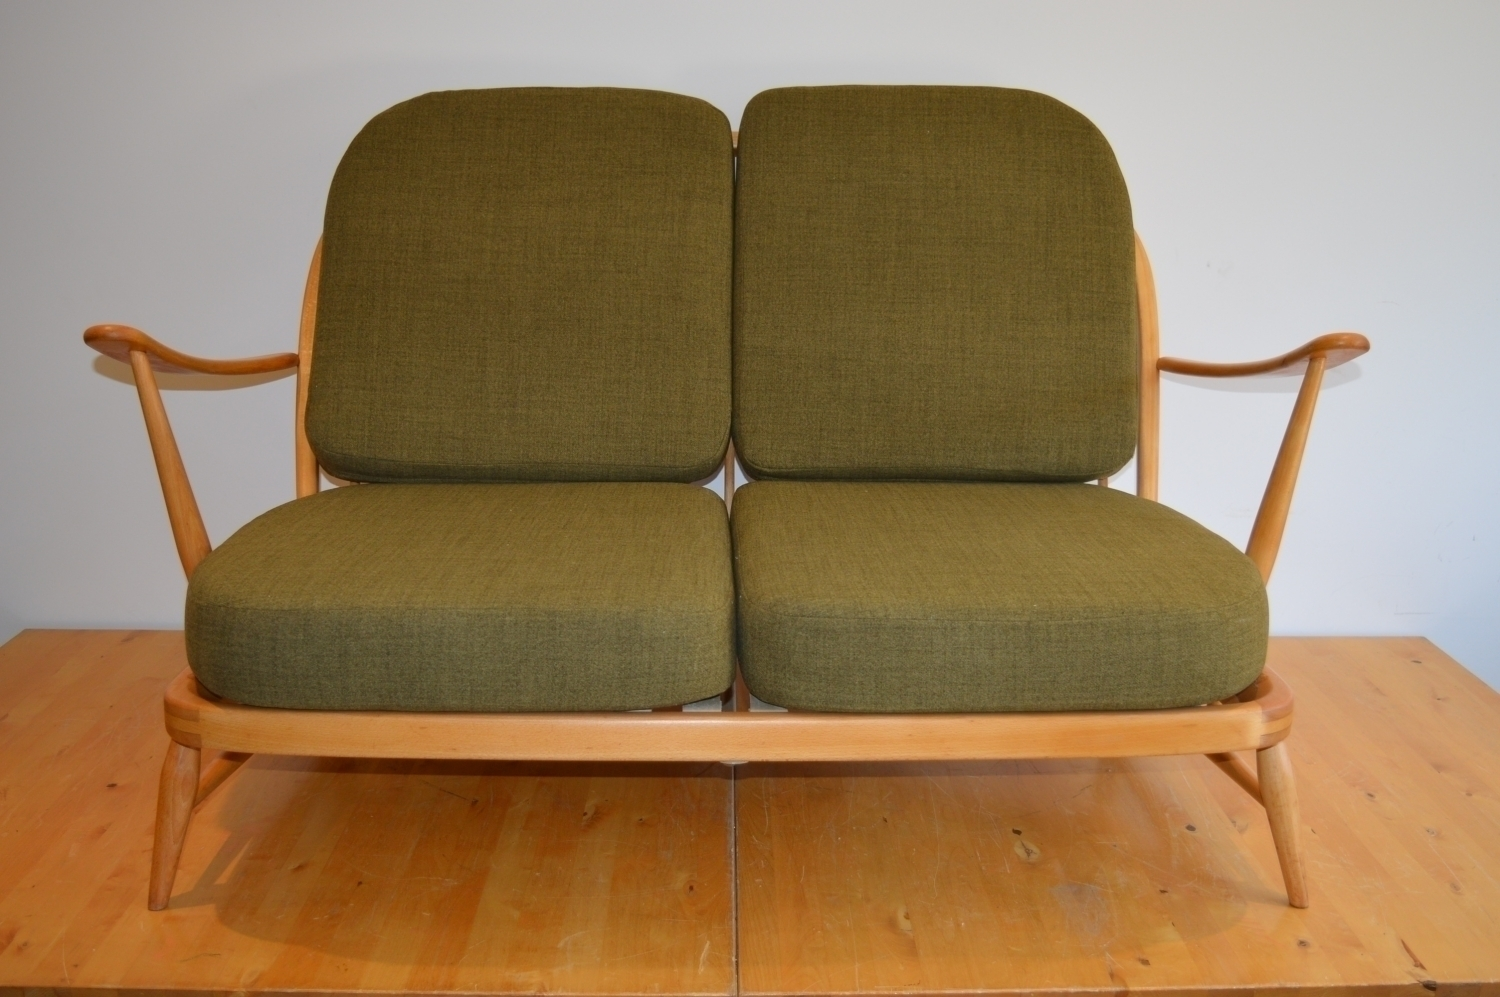 Vintage Ercol Windsor 2032 Seat Sofa In Soft Green